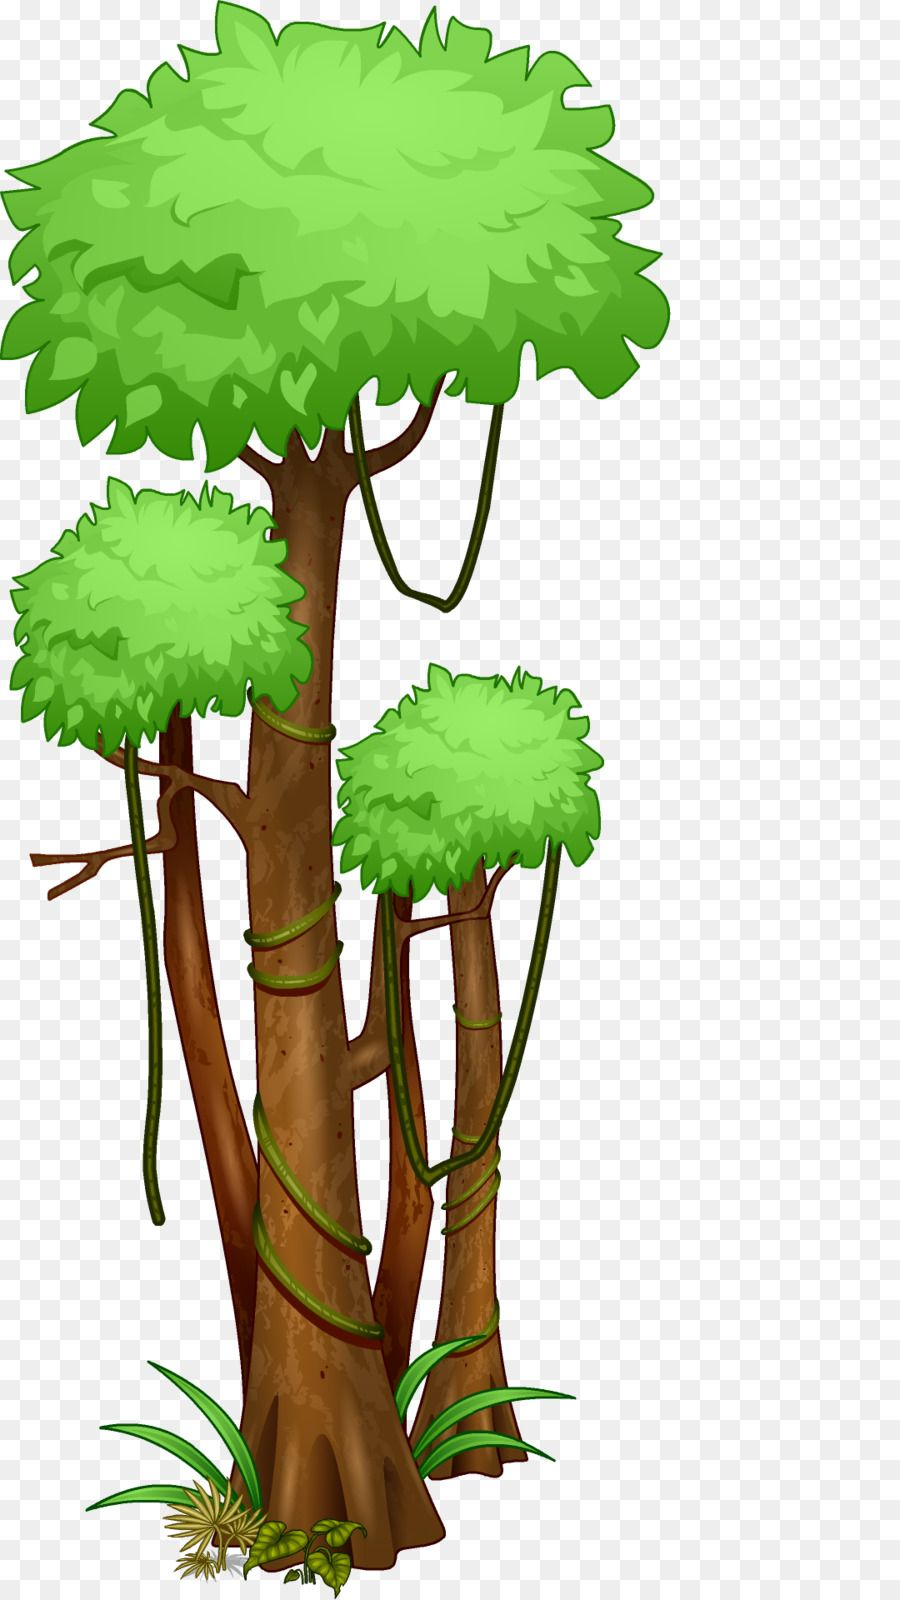 Pin By Loria On Clipart Rainforest Trees Jungle Tree Tropical Tree